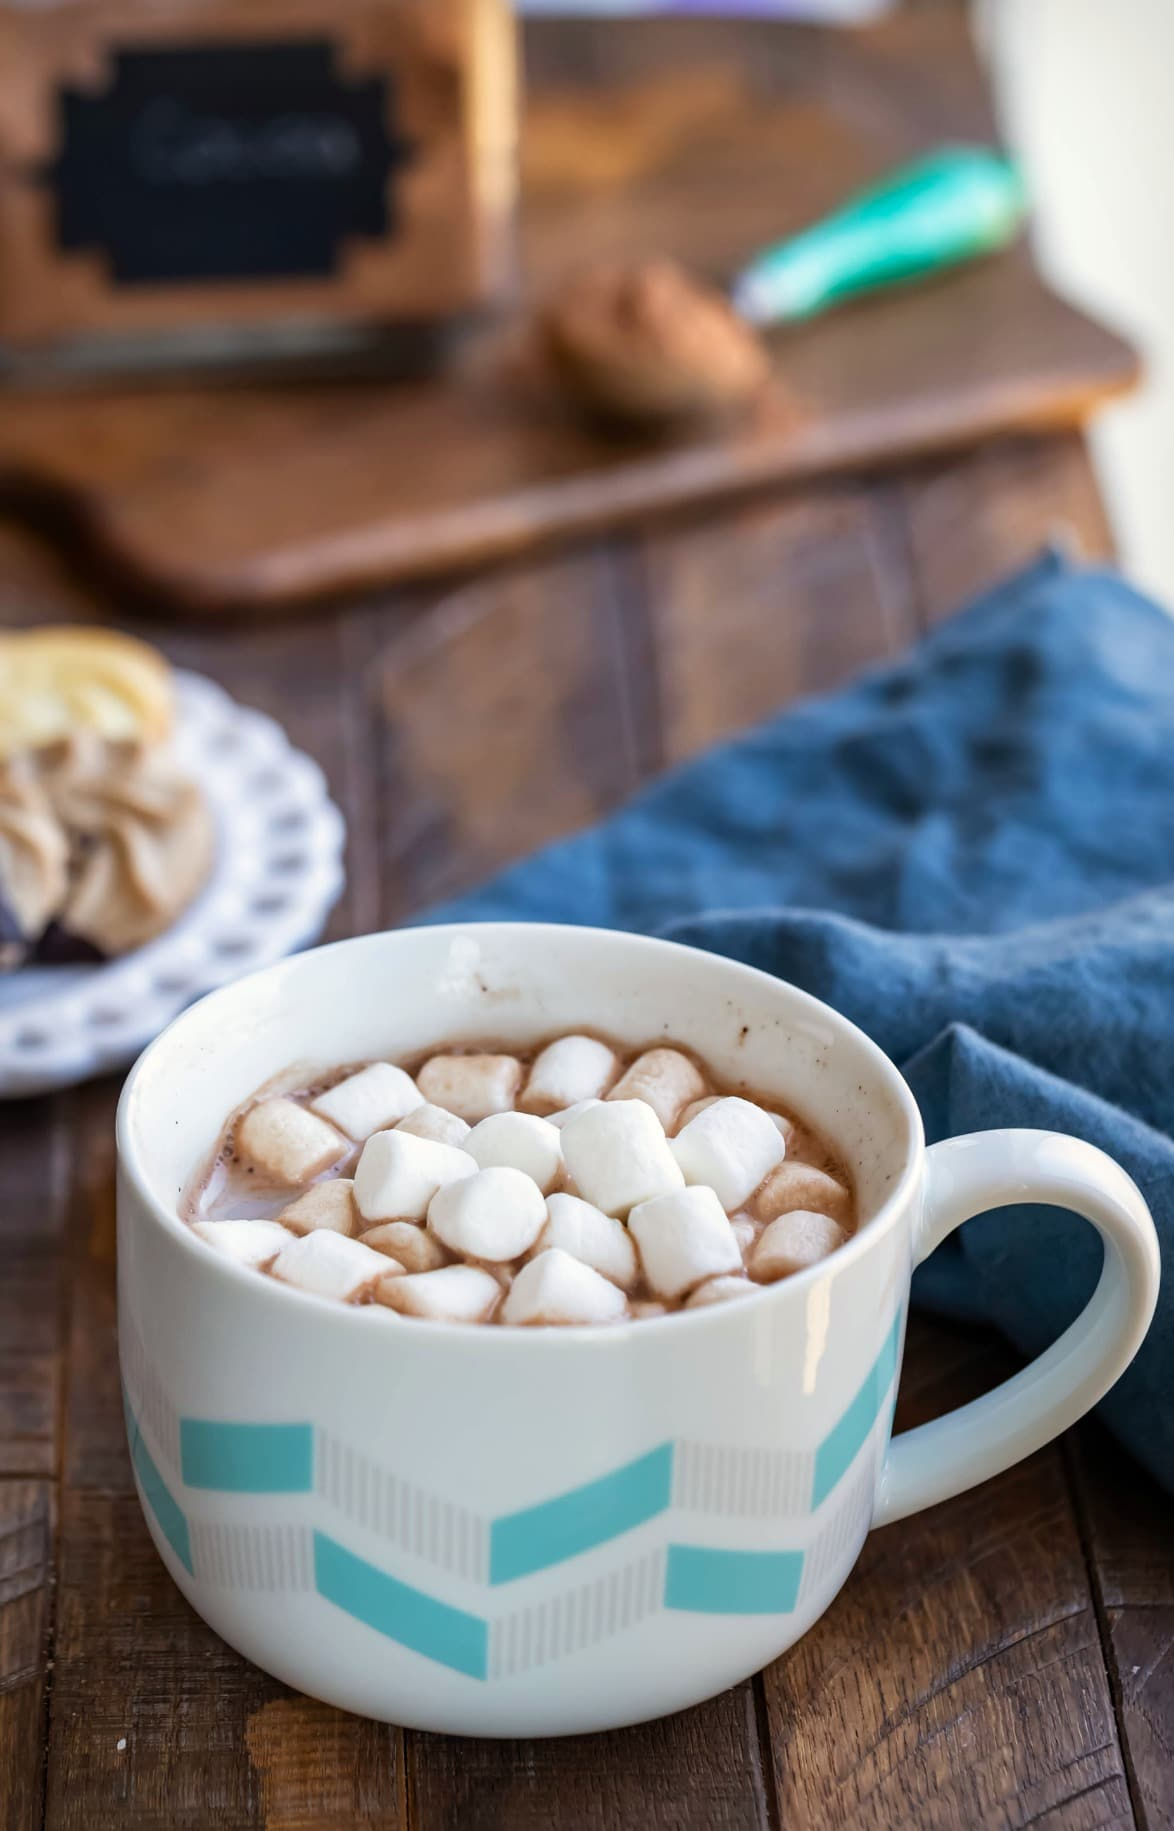 Mug of hot chocolate with marshmallows